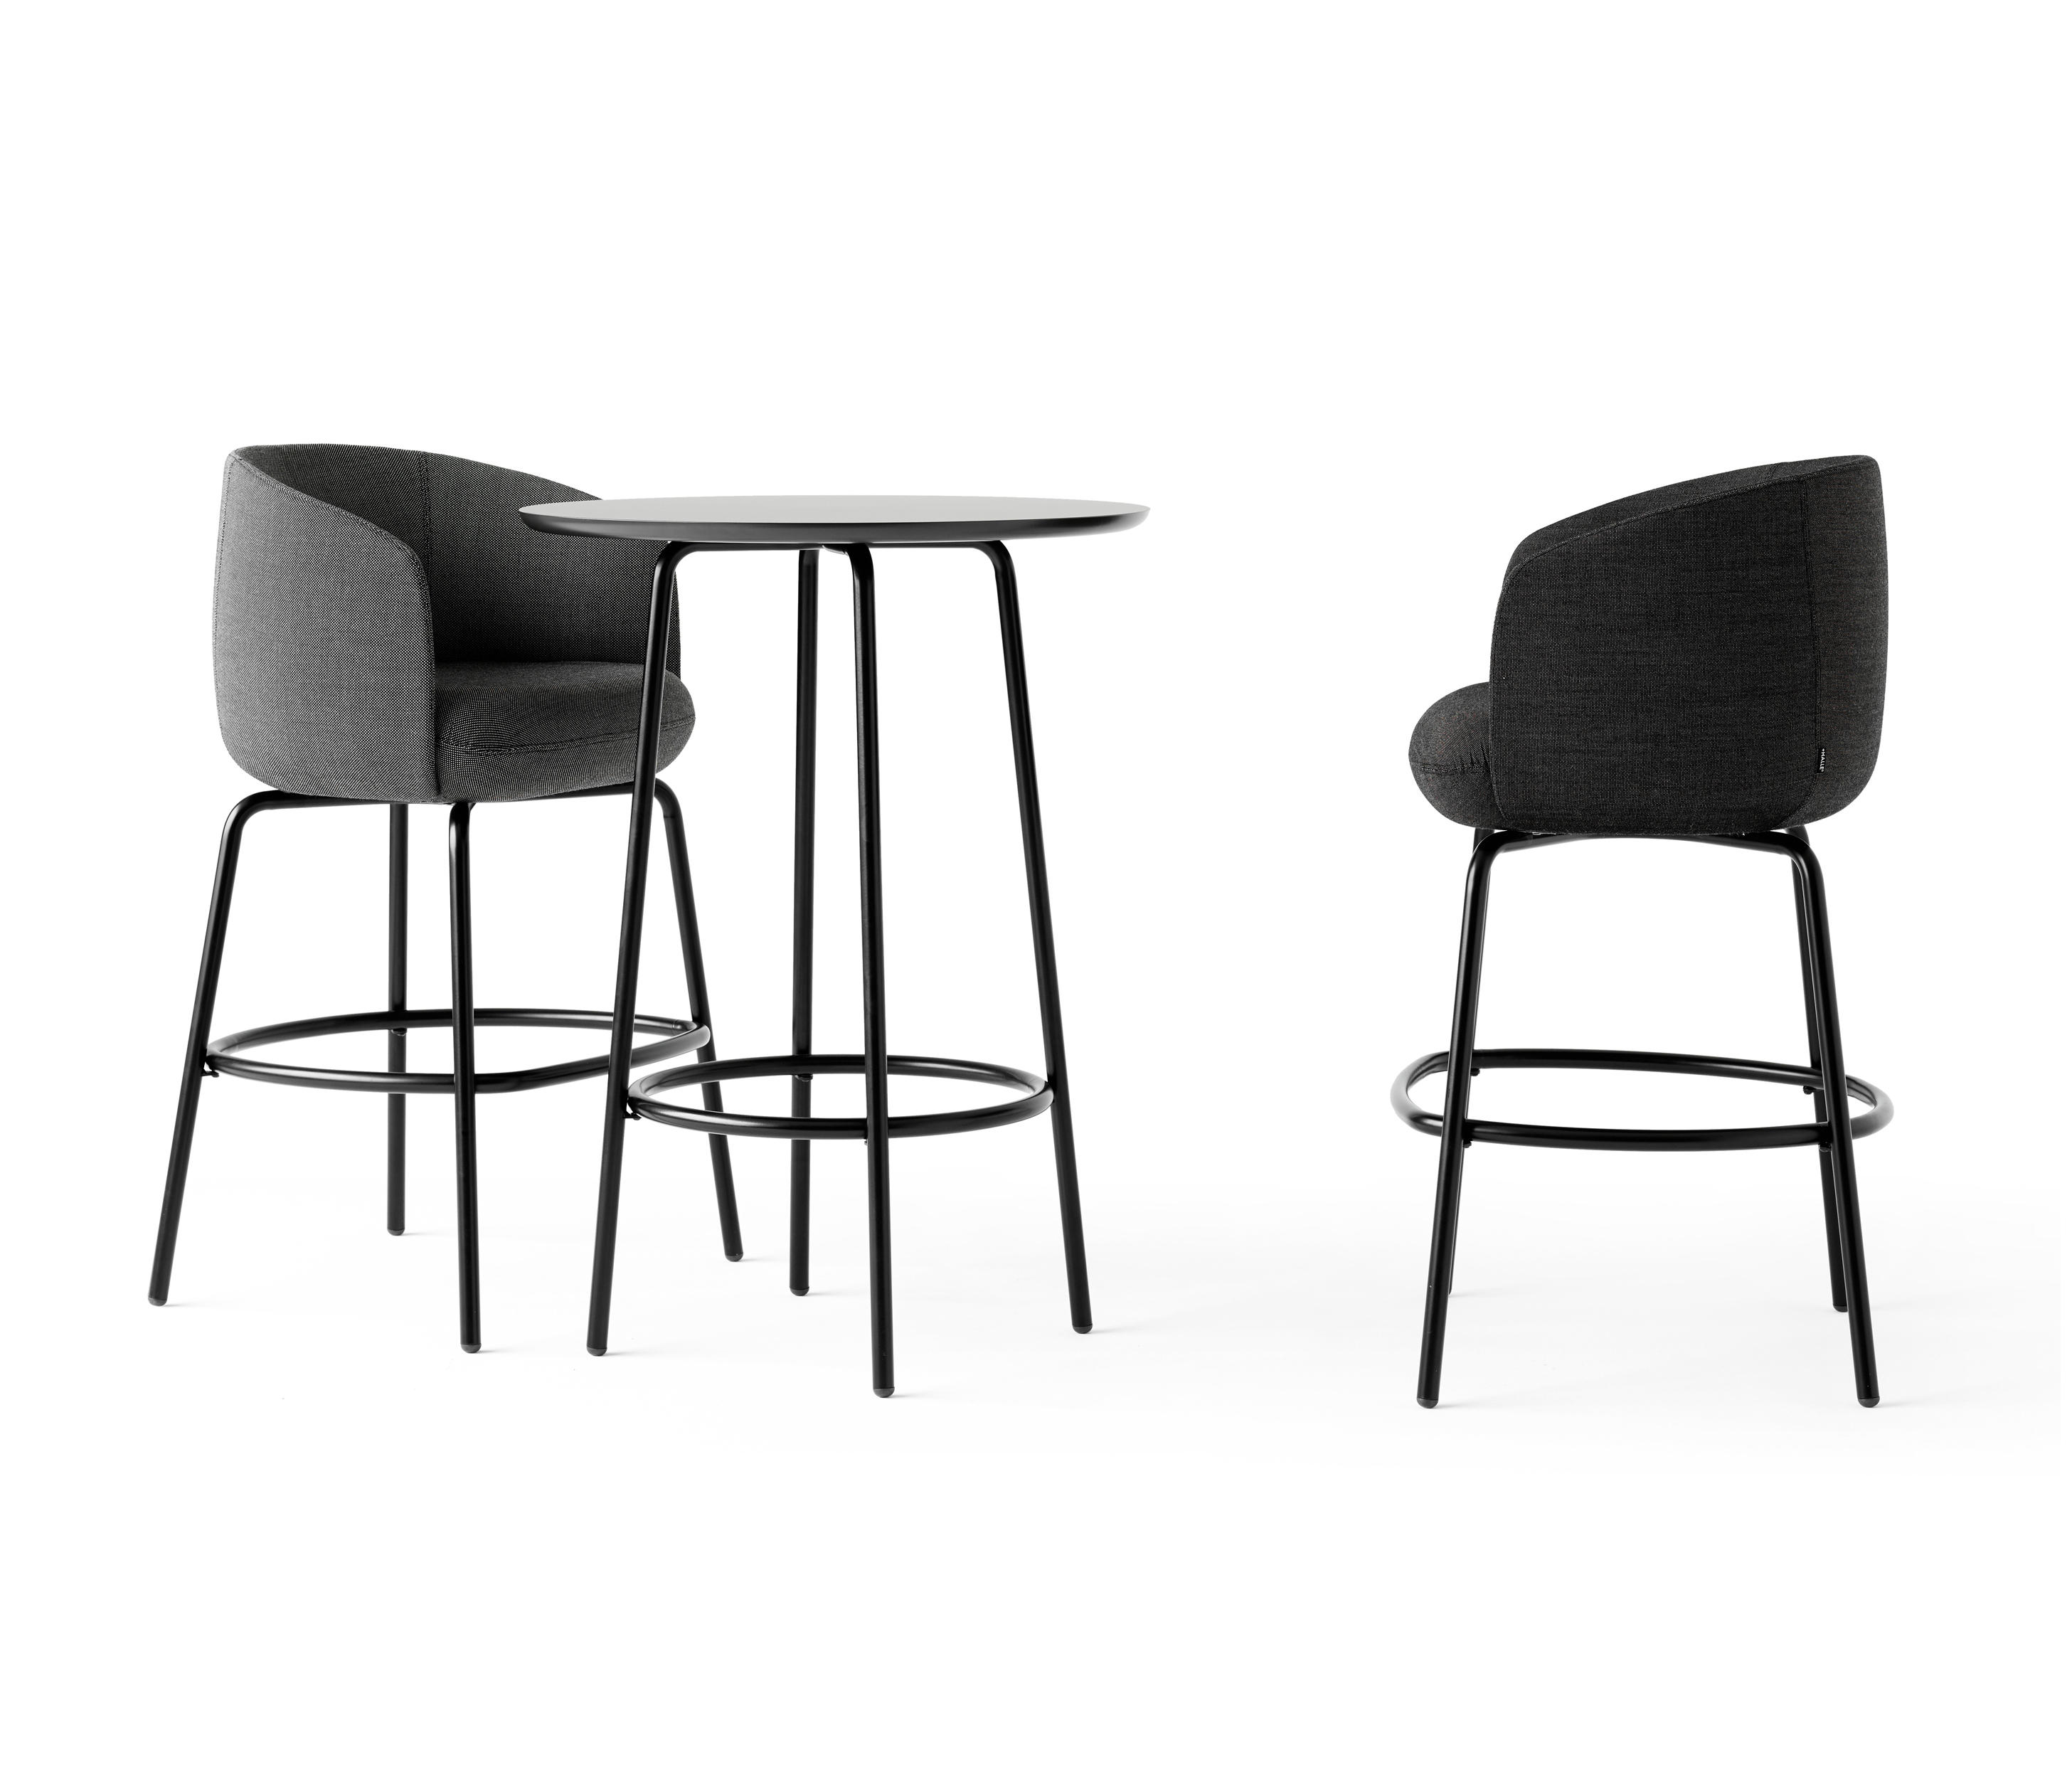 Low Nest Chair Chairs From Halle Architonic